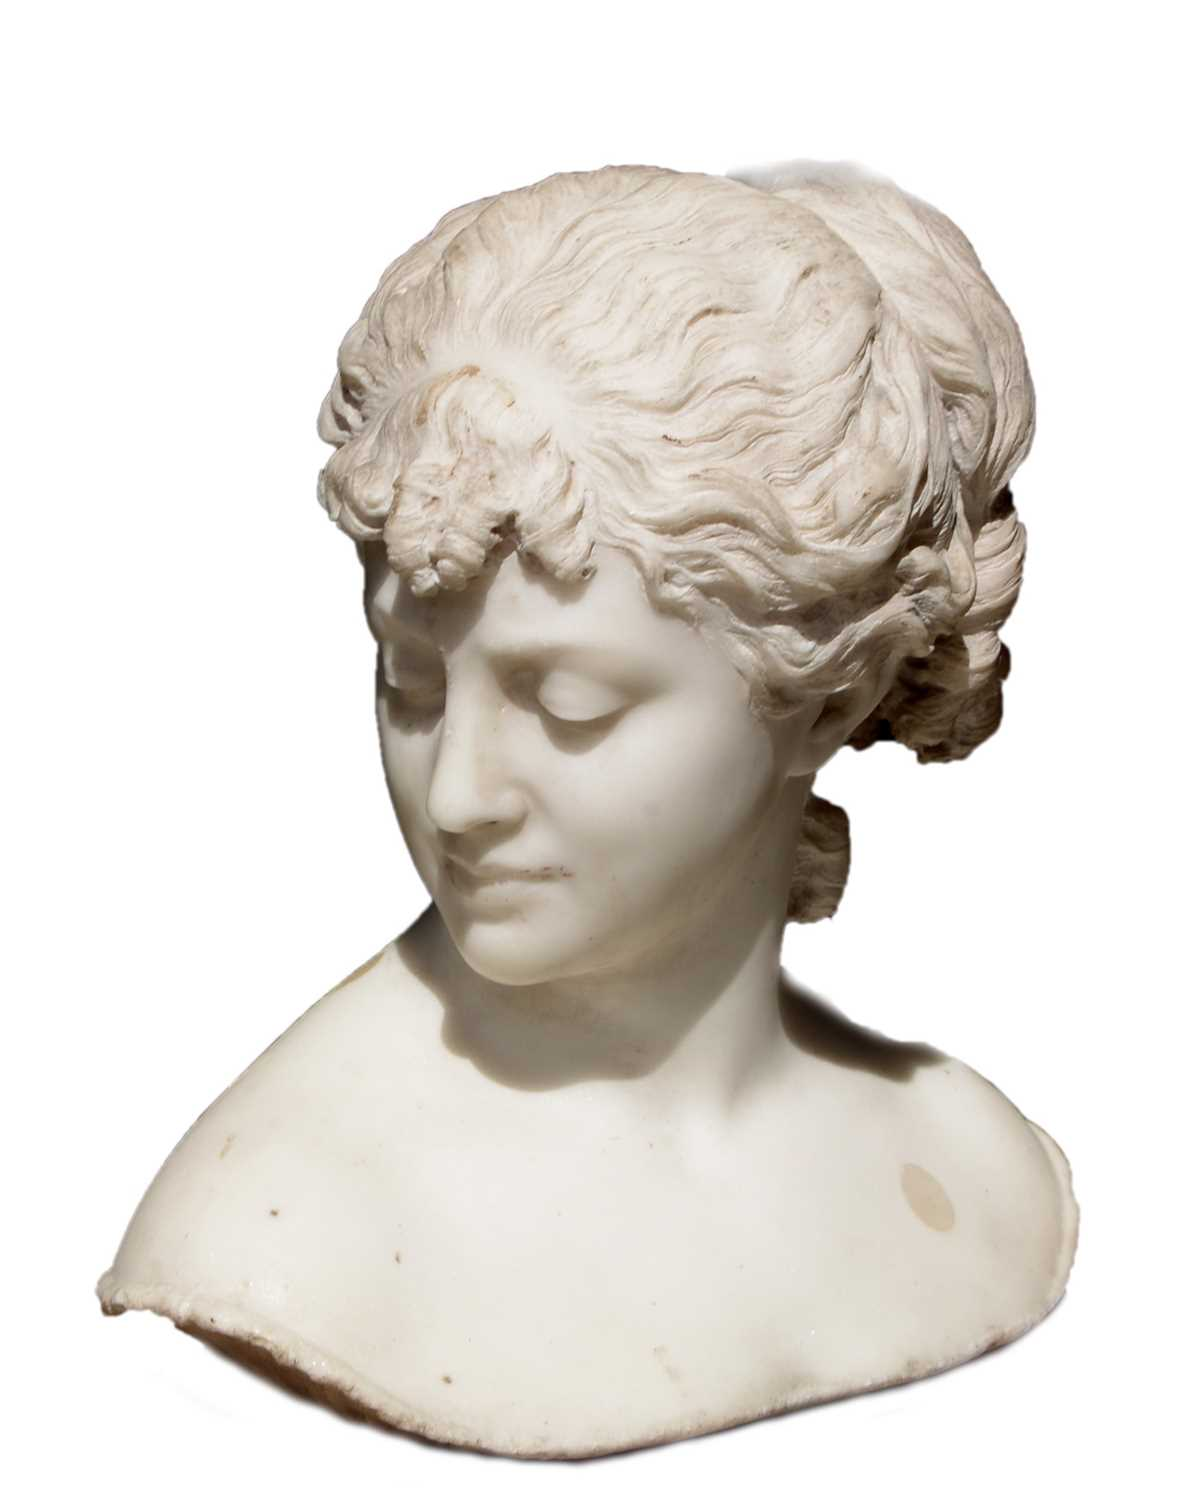 Lot 998 - 19th Century marble bust